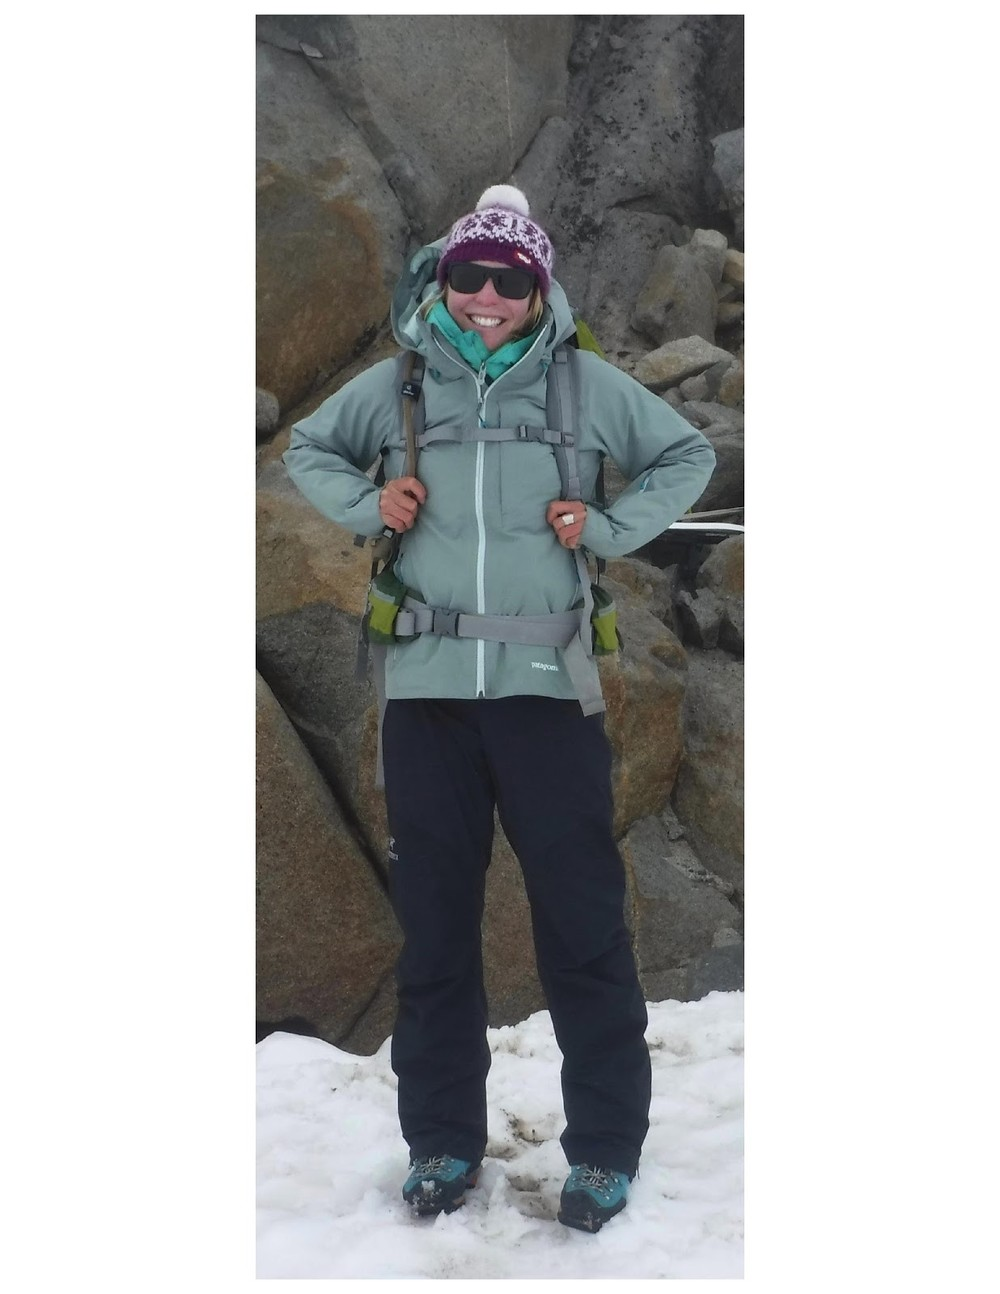 LARA HUGHES-ALLEN - Field Staff & GPS Survey Lead